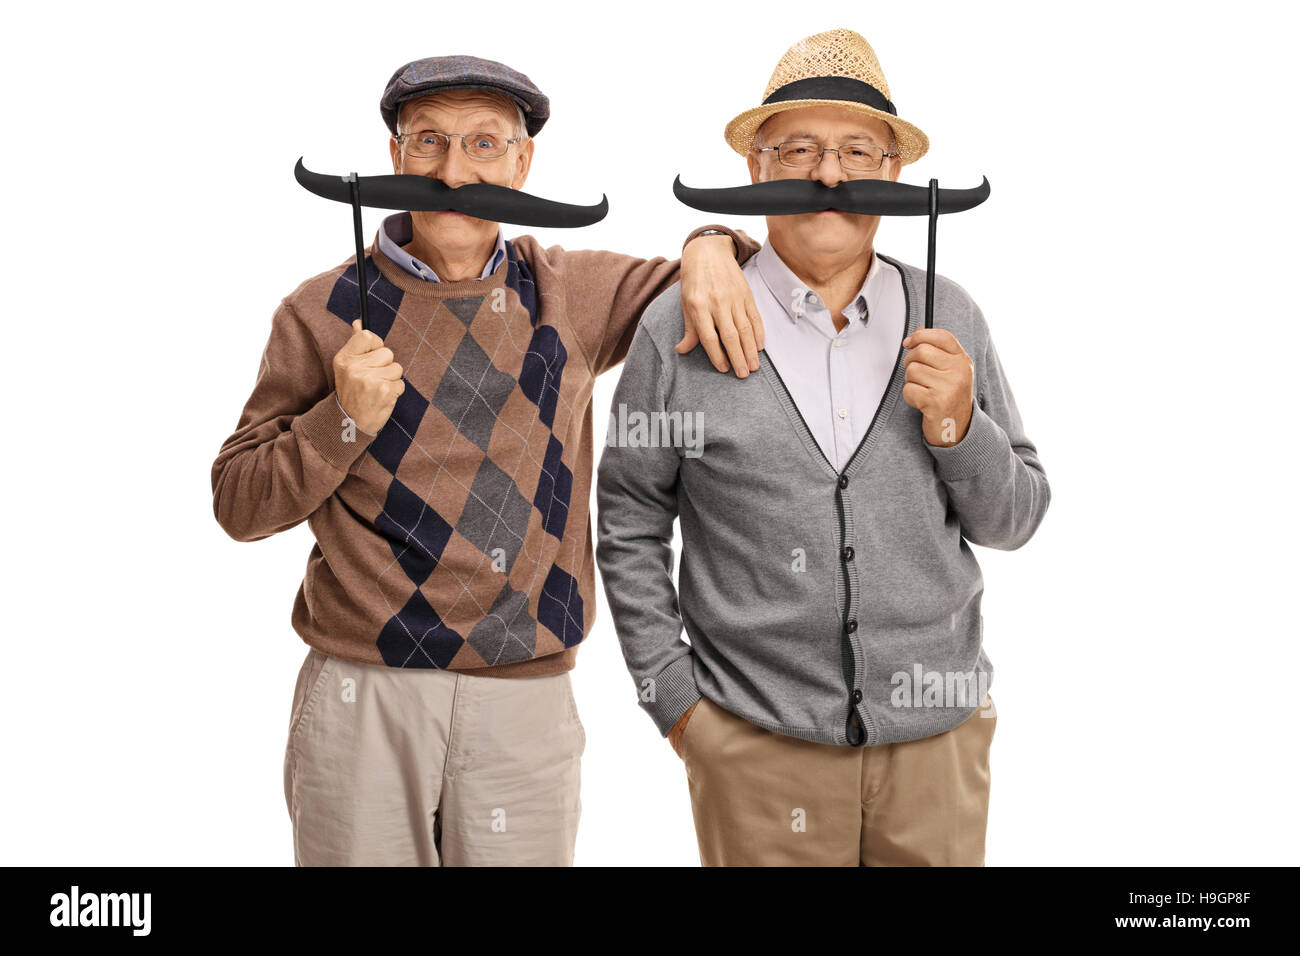 Seniors posing with big fake moustaches isolated on white background - Stock Image